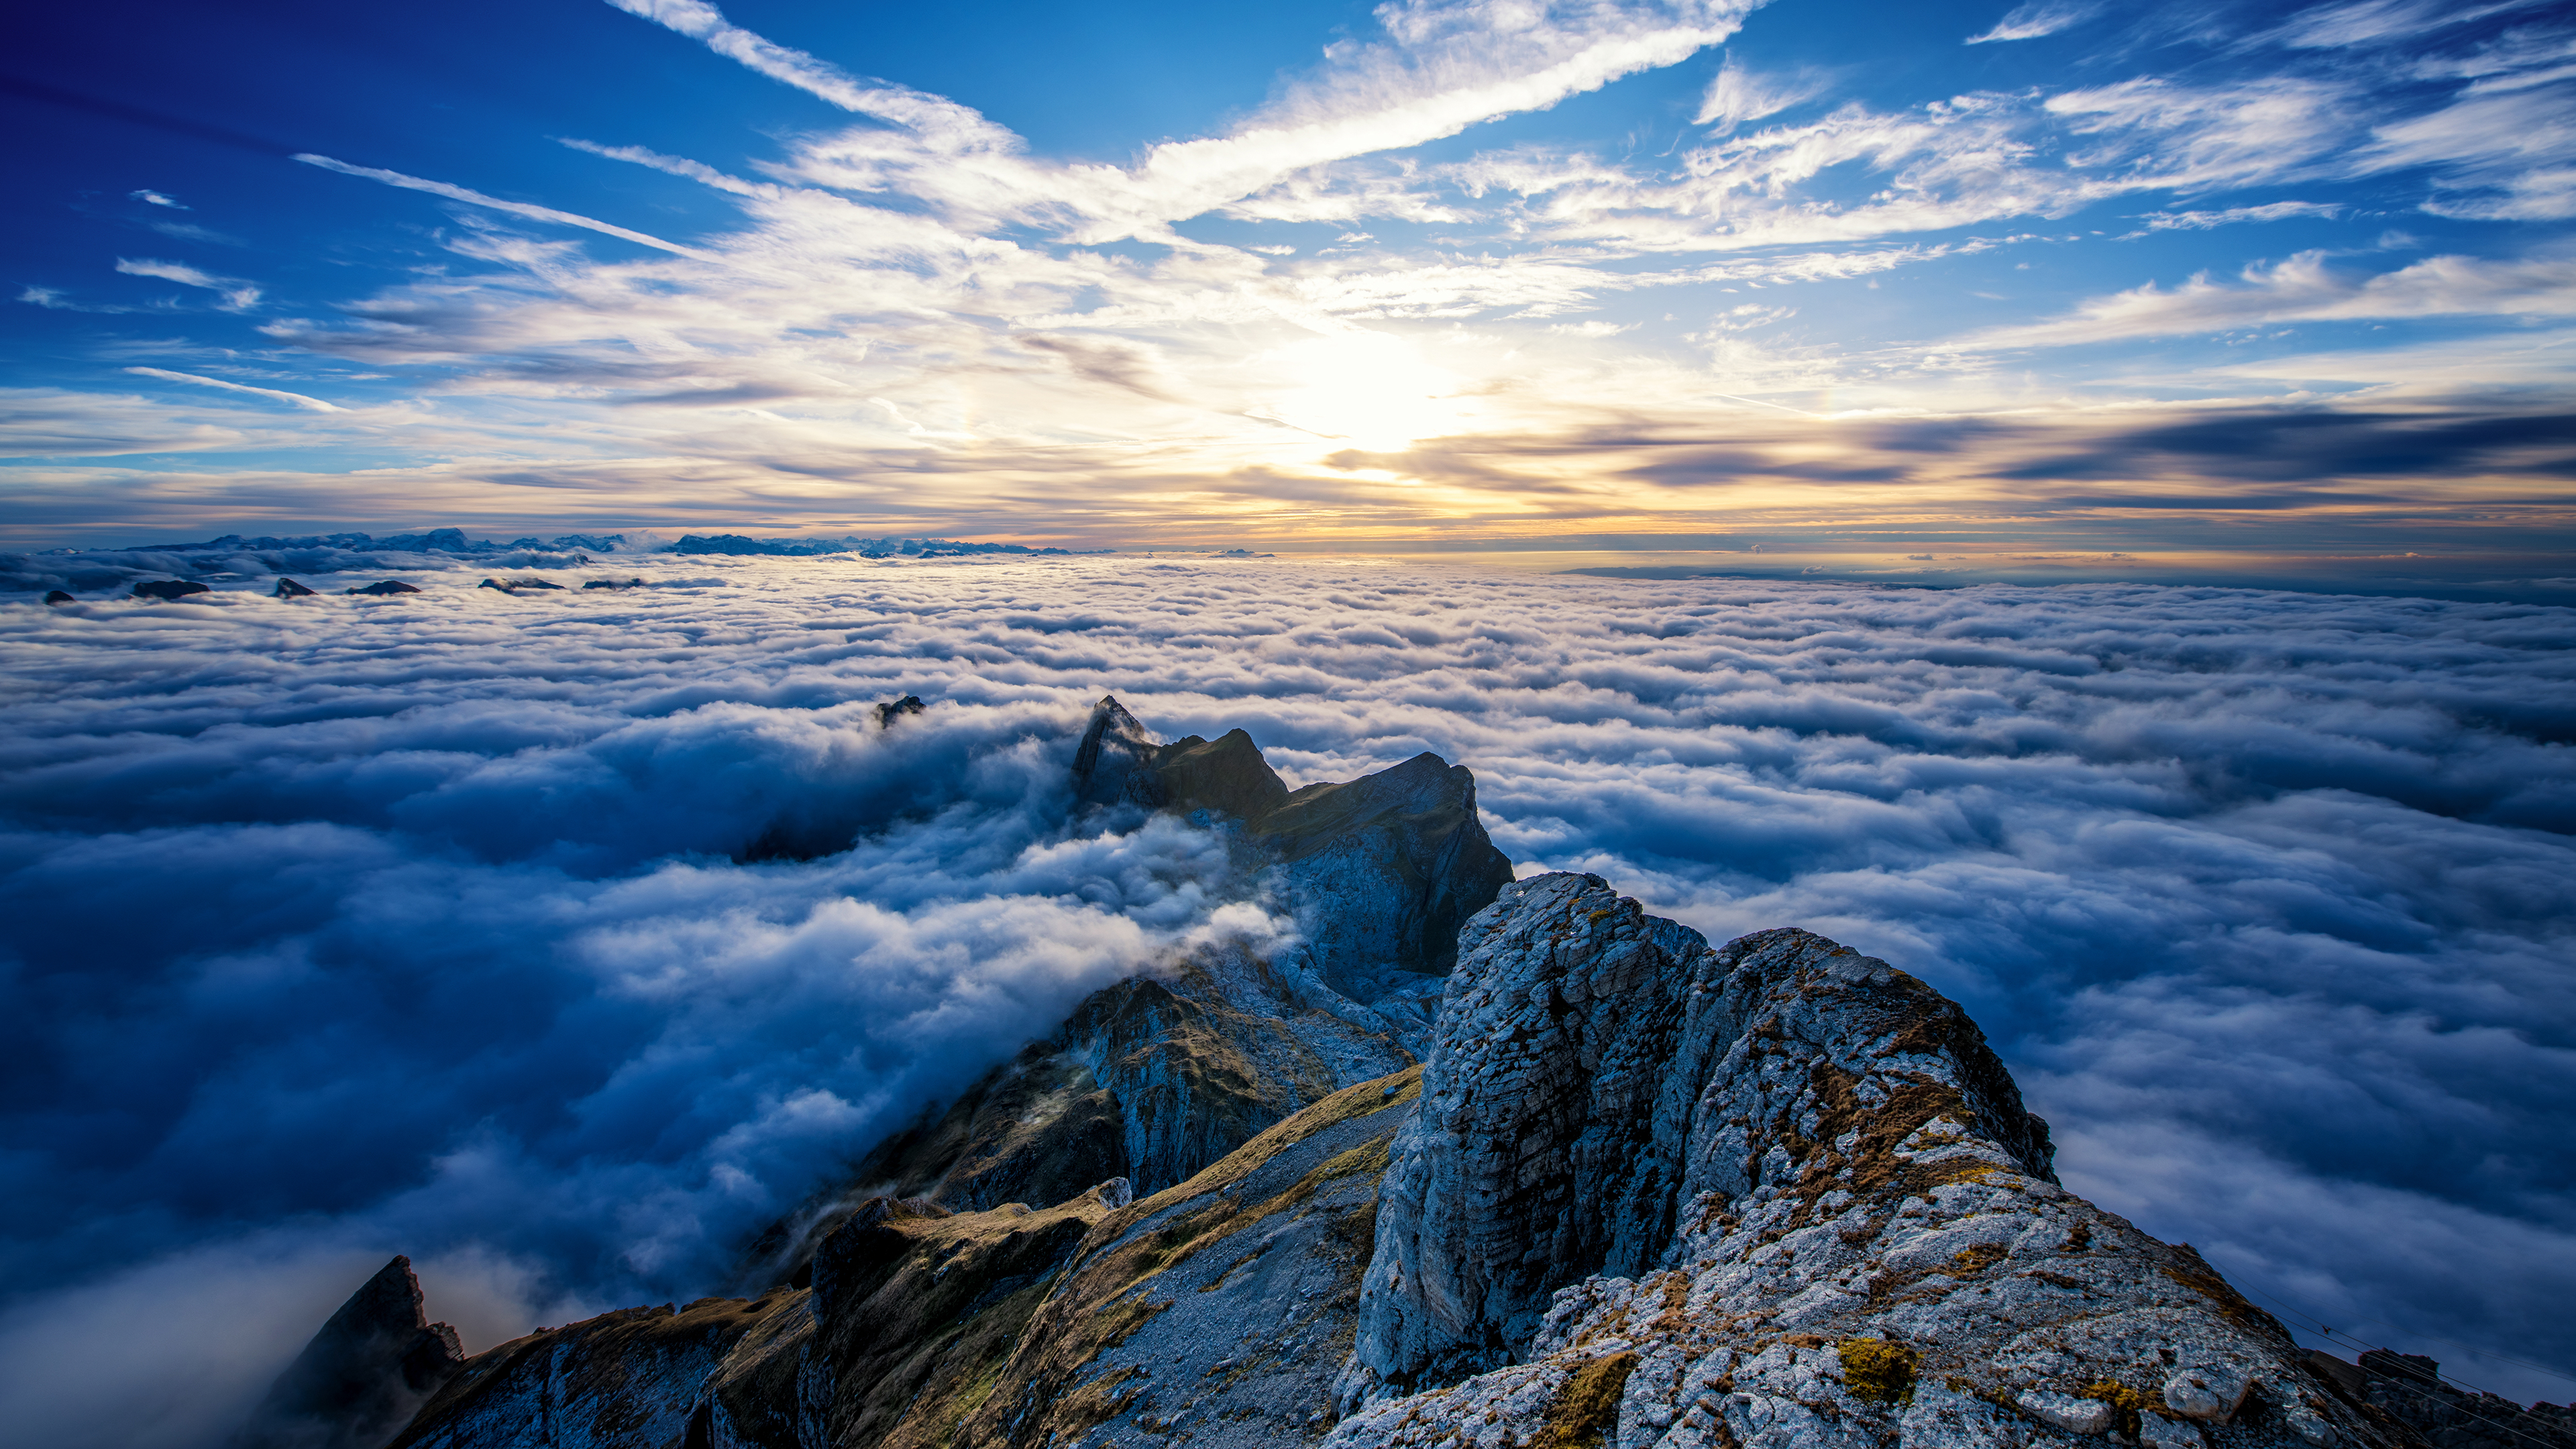 White Clouds In The Sky 4k Hd Desktop Wallpaper For 4k: Saentis Mountains Clouds View From Top 4k, HD Nature, 4k